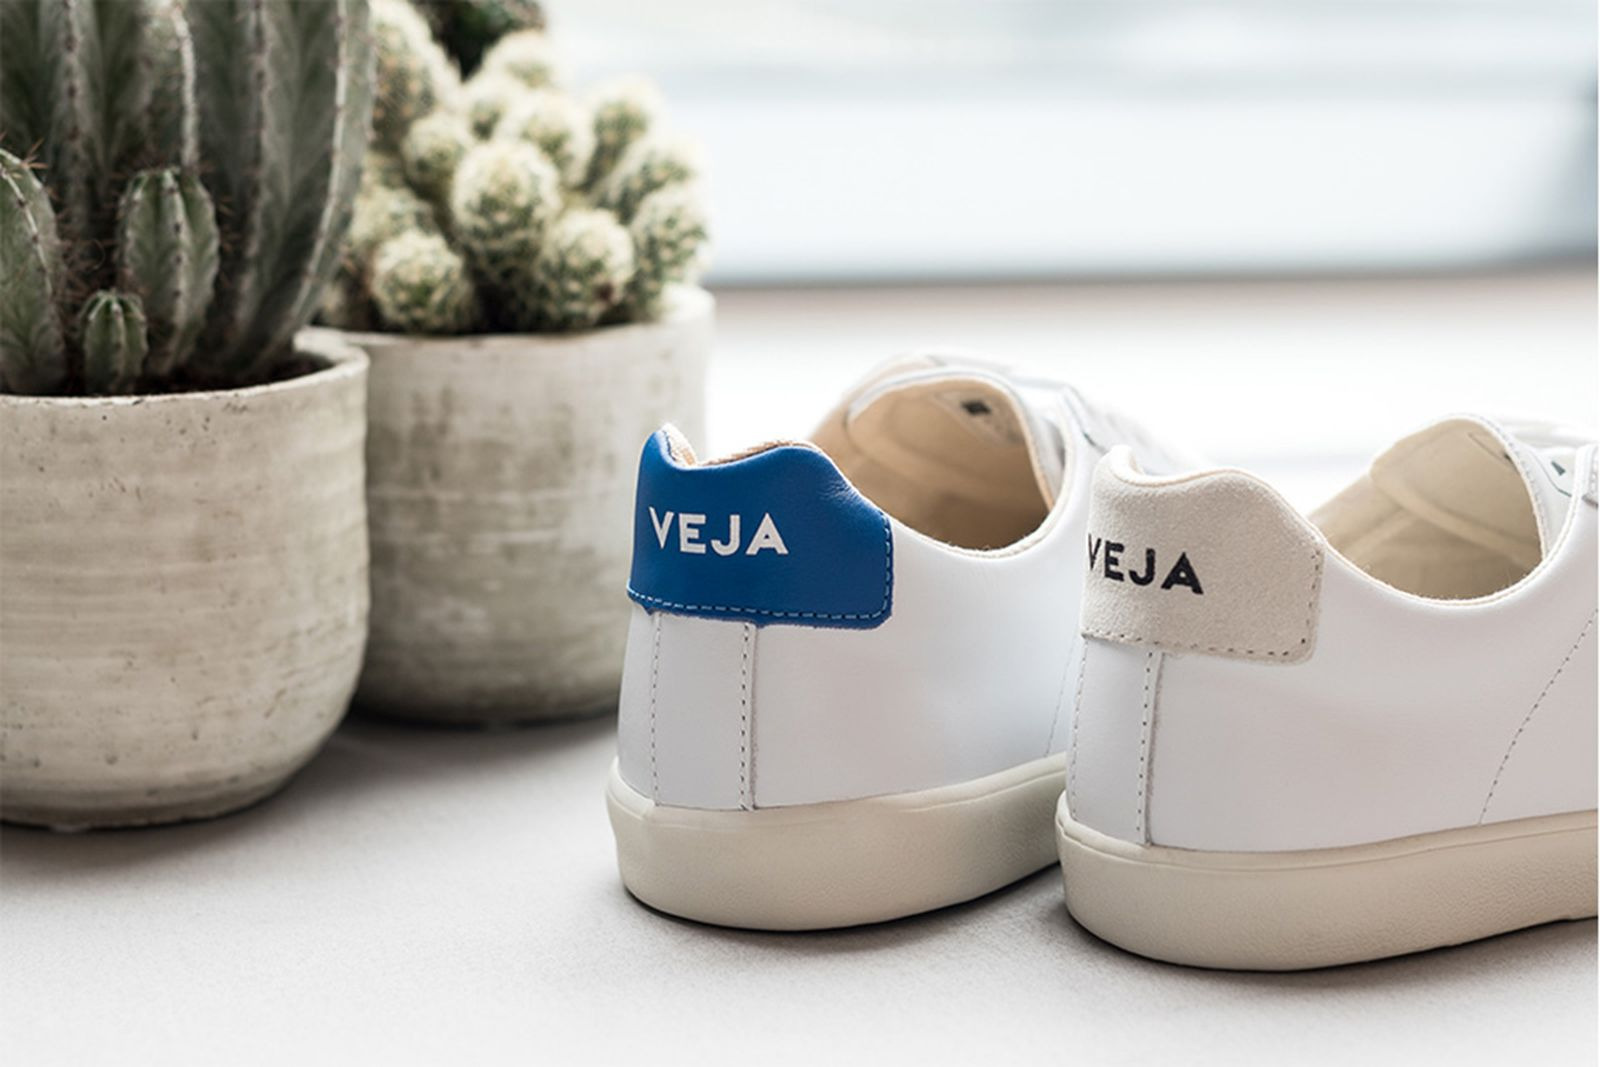 sustainable-fashion-brands-veja